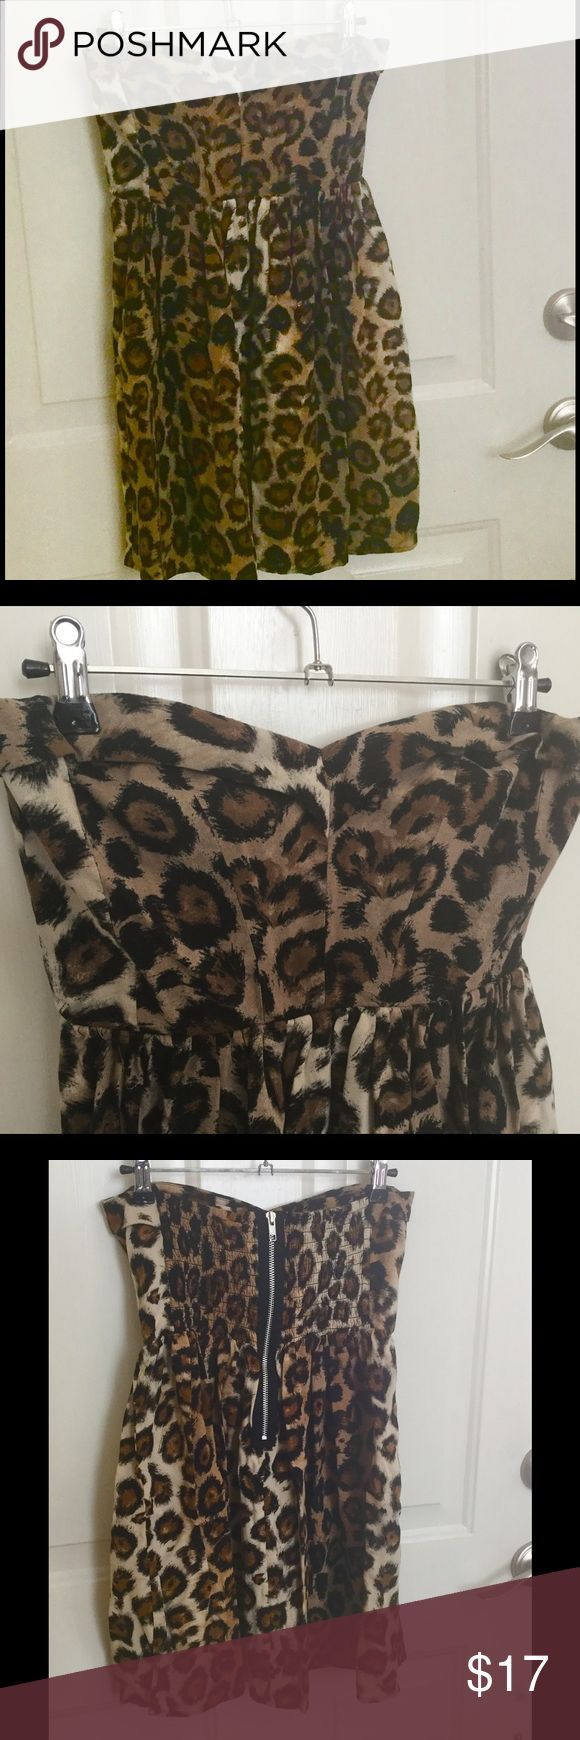 "Moda Cheetah Leopard Mini Dress Strapless Sexy 6 Cute, strapless dress with exposed zipper in the back. Gathered elastic in back to help with fit. Approximate measurements are chest 28"", waist 26"" and length 23"". Moda International, size 6, 100% rayon. No holes or stains. Thanks for looking ❤ Moda International Dresses Strapless"